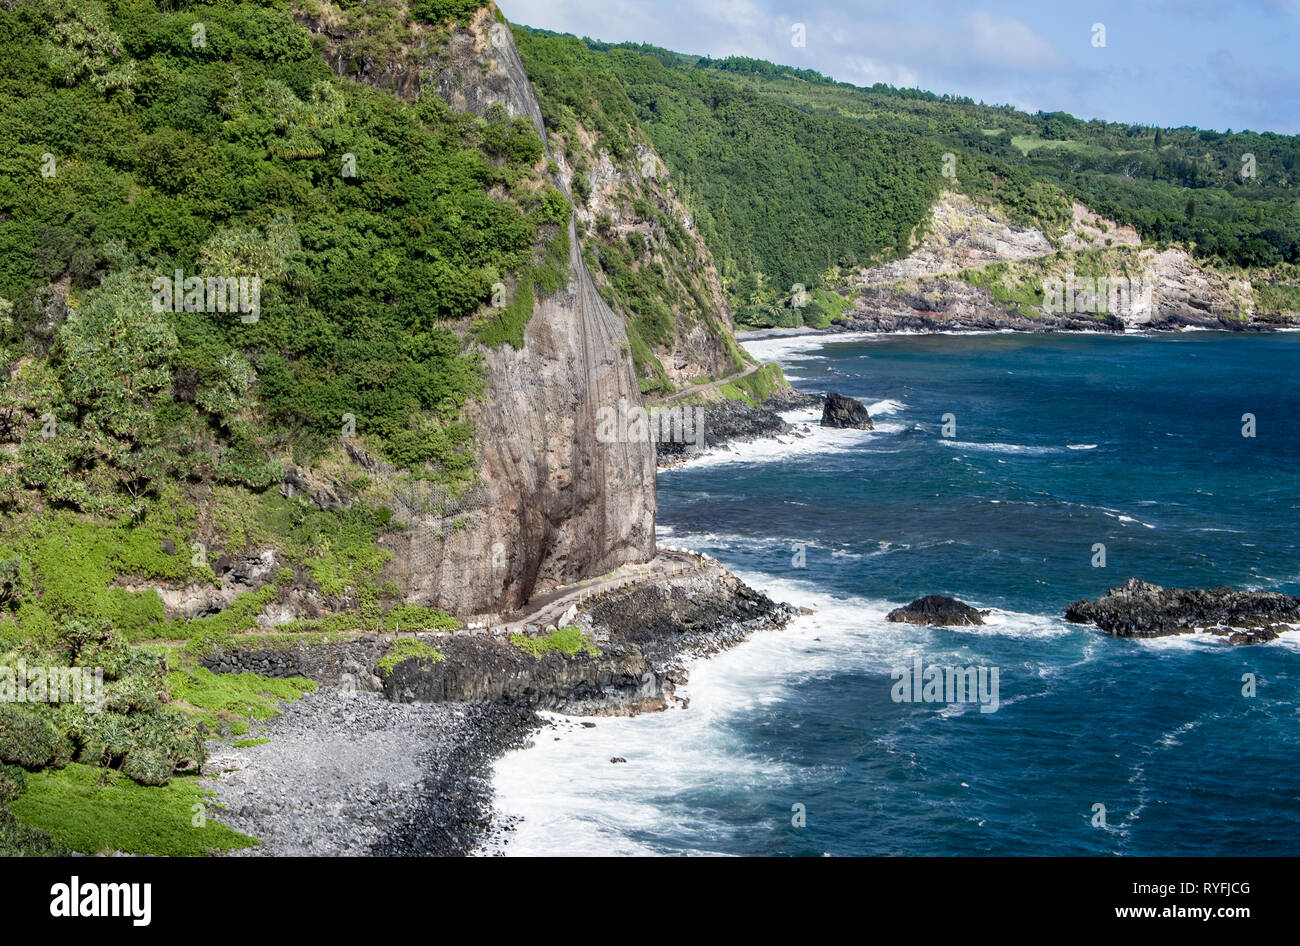 Maui Cliff Road:  A narrow road curves around a cliff face as the Piiliani Highway skirts the coastline of eastern Maui. - Stock Image